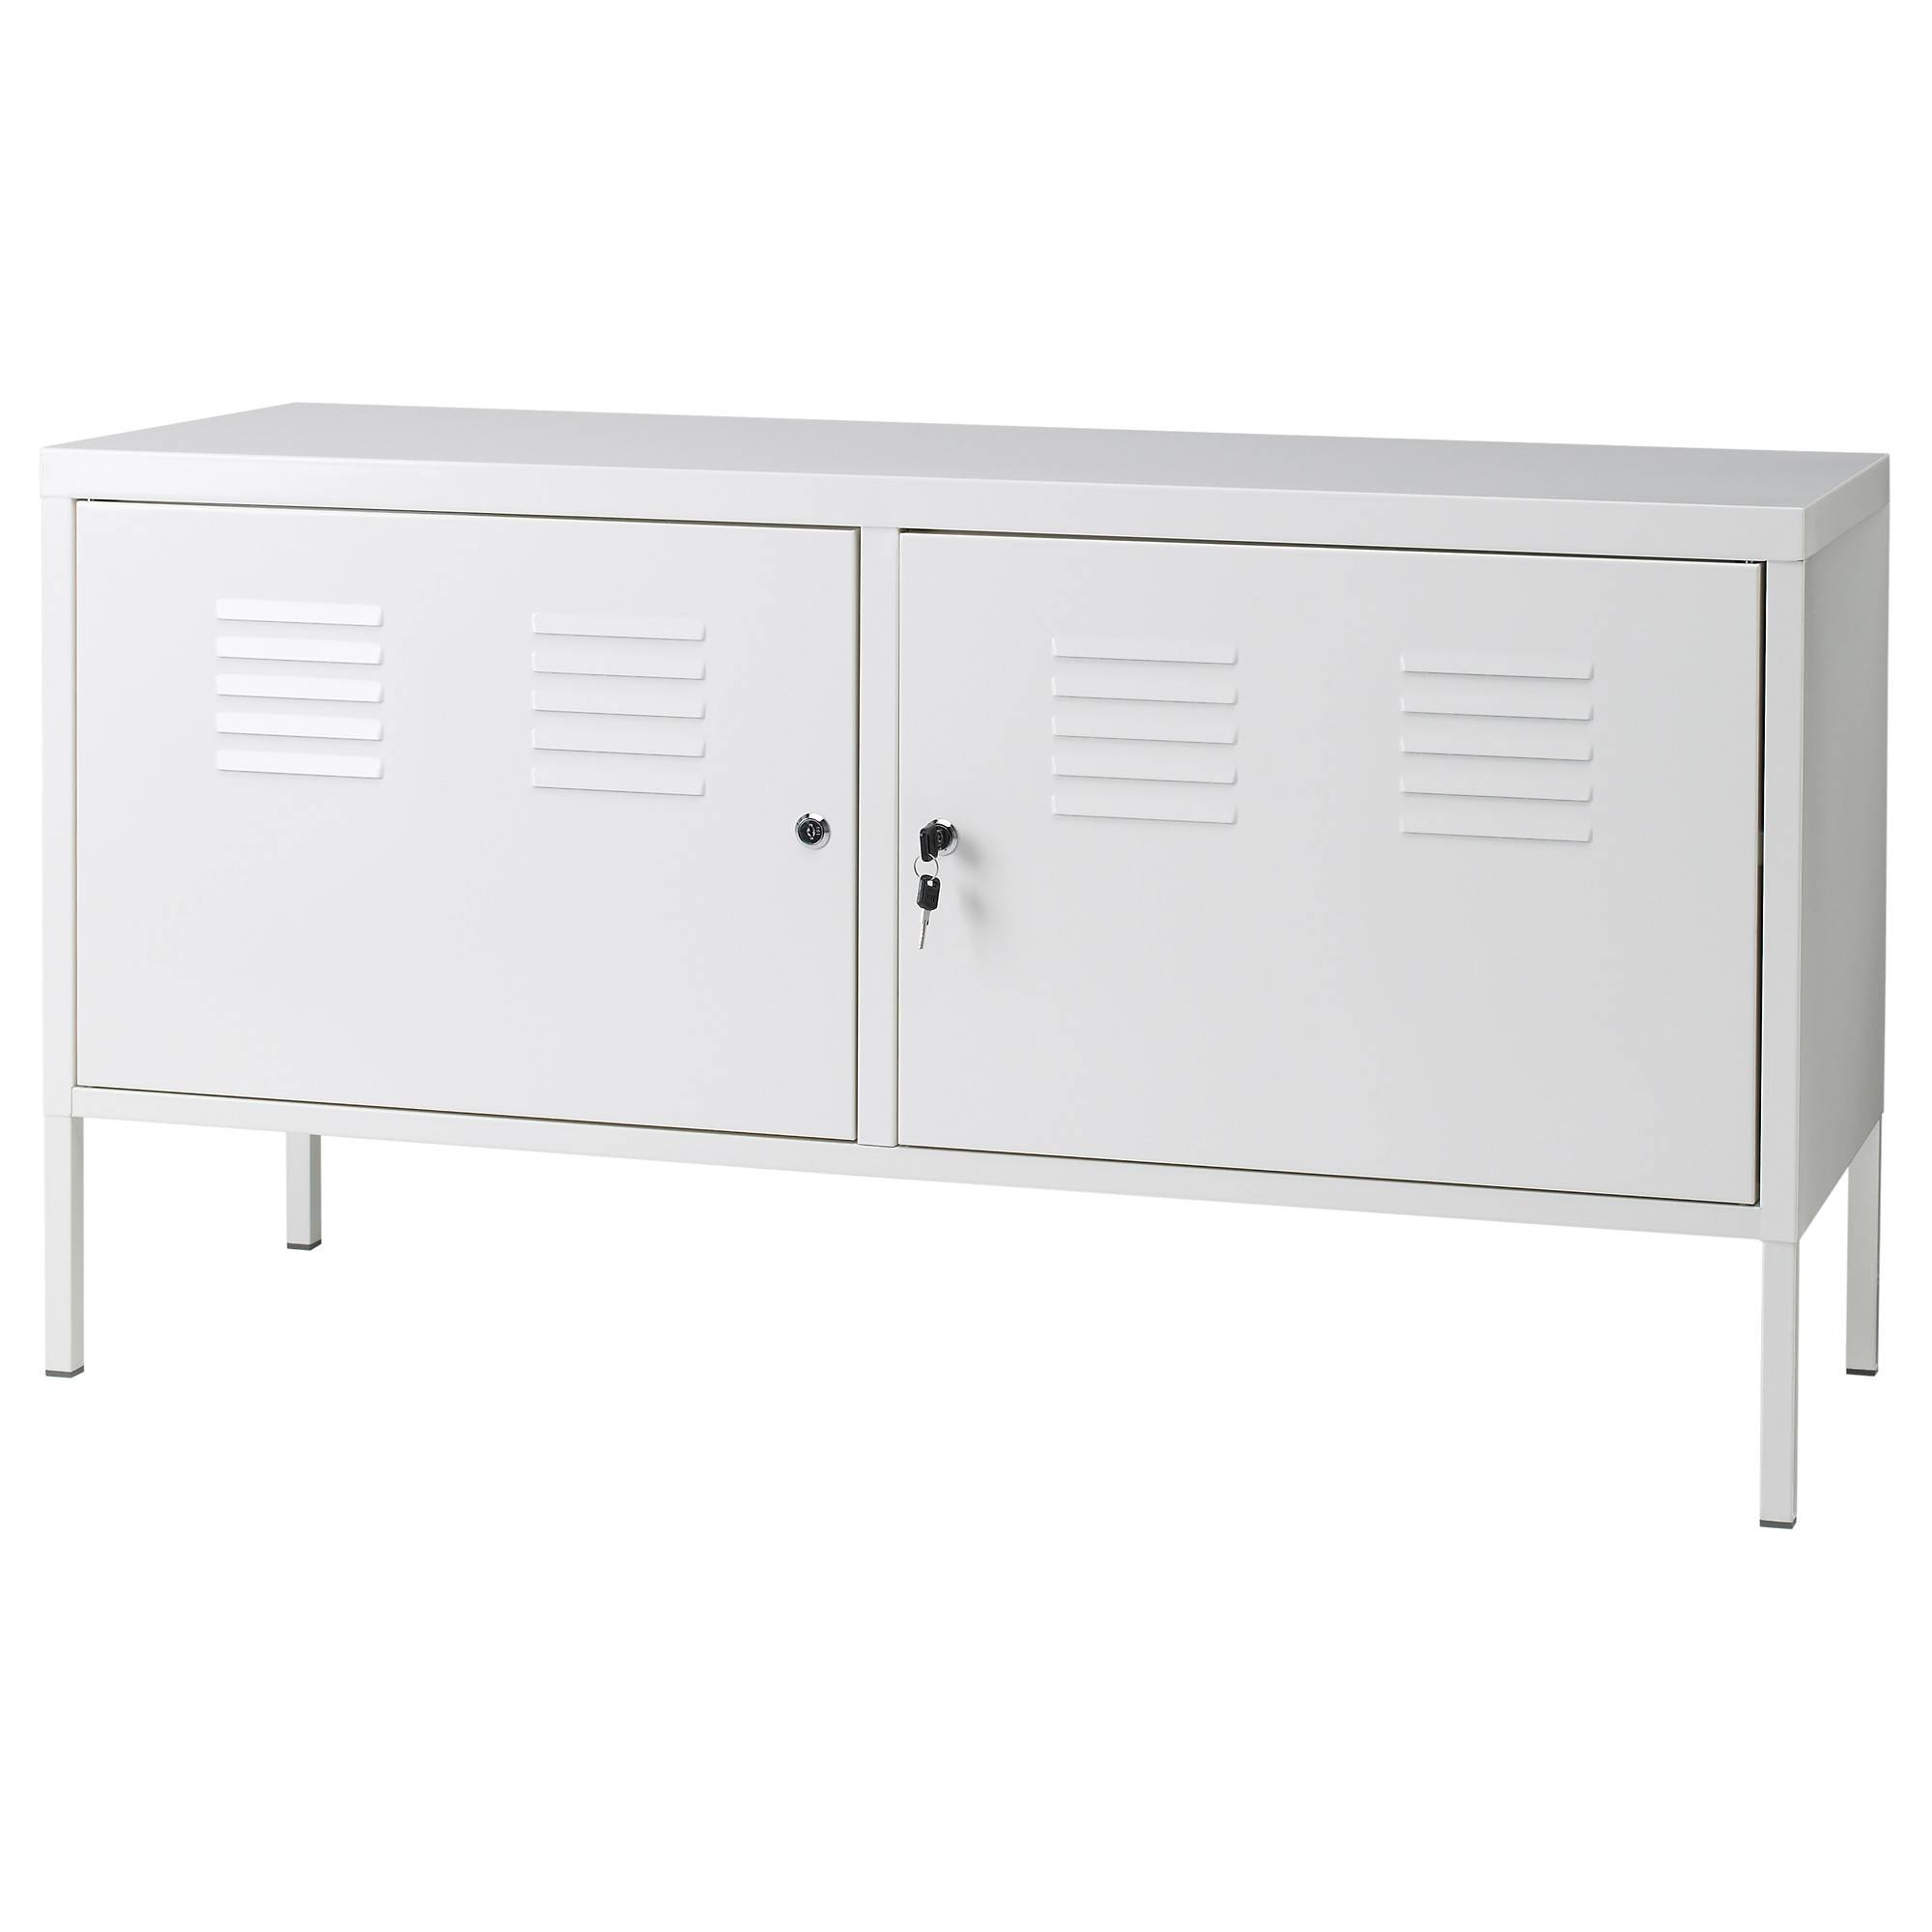 Ikea Ps Cabinet White 119X63 Cm - Ikea with regard to Sideboards Cabinets (Image 5 of 15)